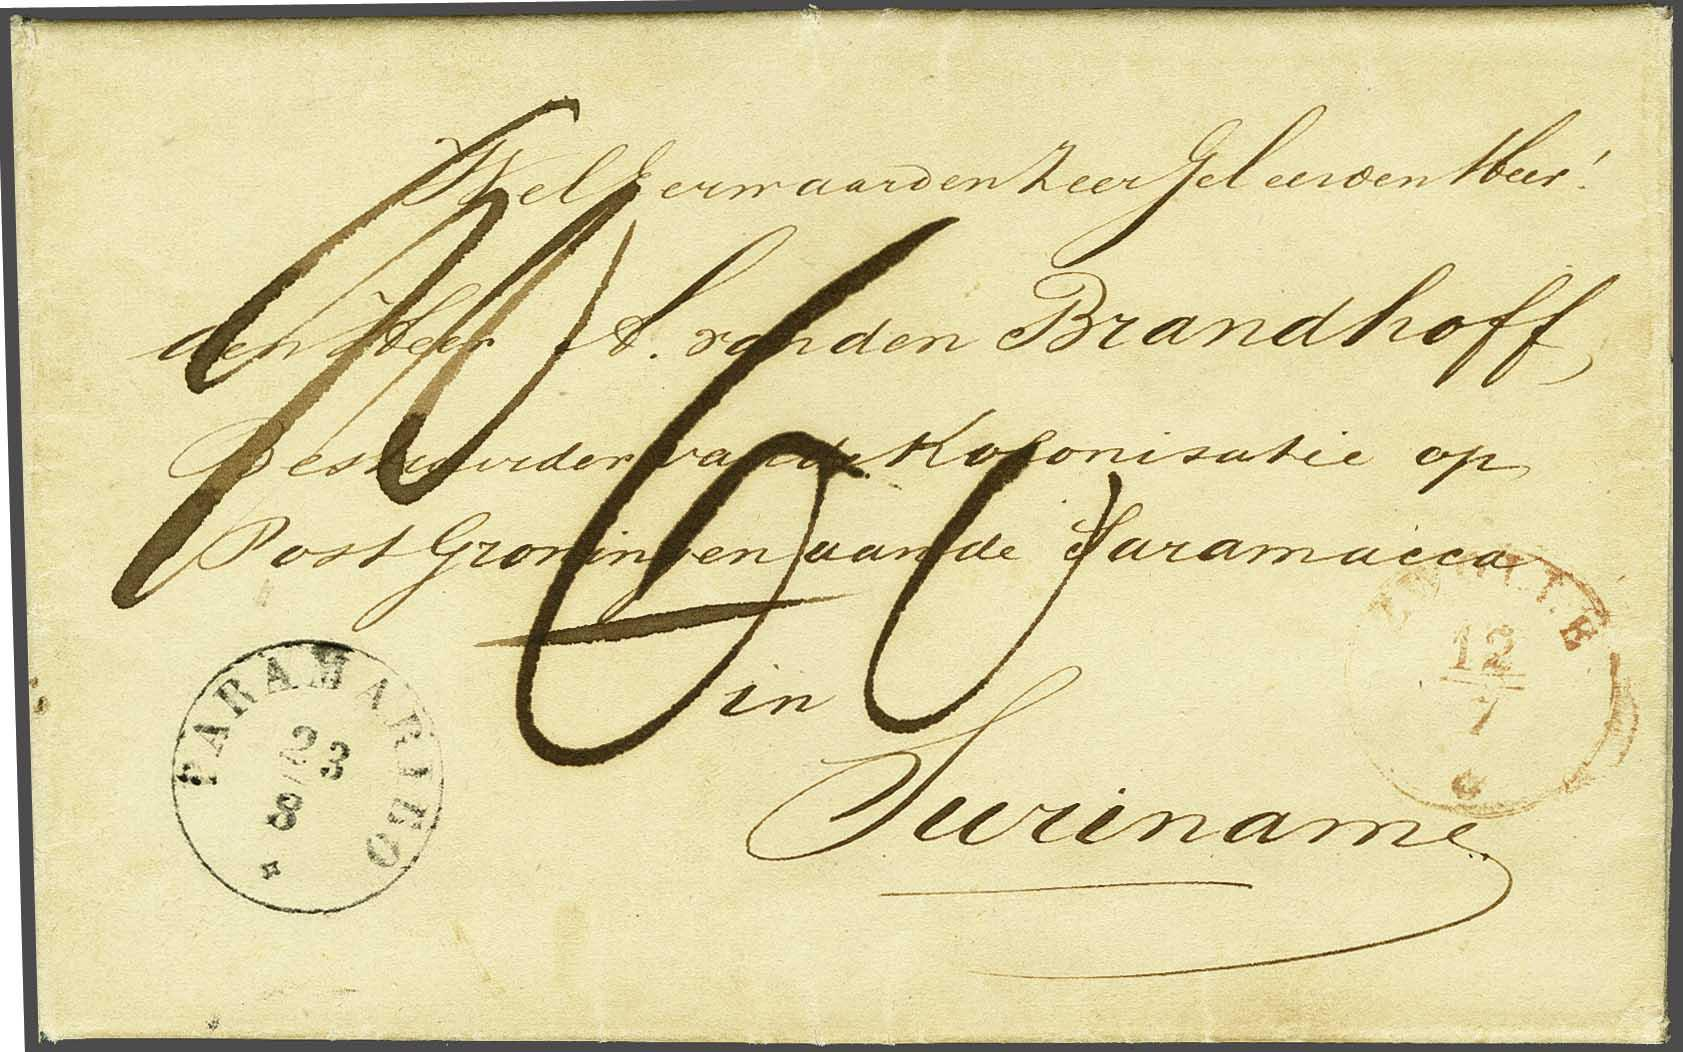 Lot 2167 - Netherlands and former colonies surinam -  Corinphila Veilingen Auction 245-246 Day 3 - Netherlands and former colonies - Single lots, Collections and lots, Boxes and literature